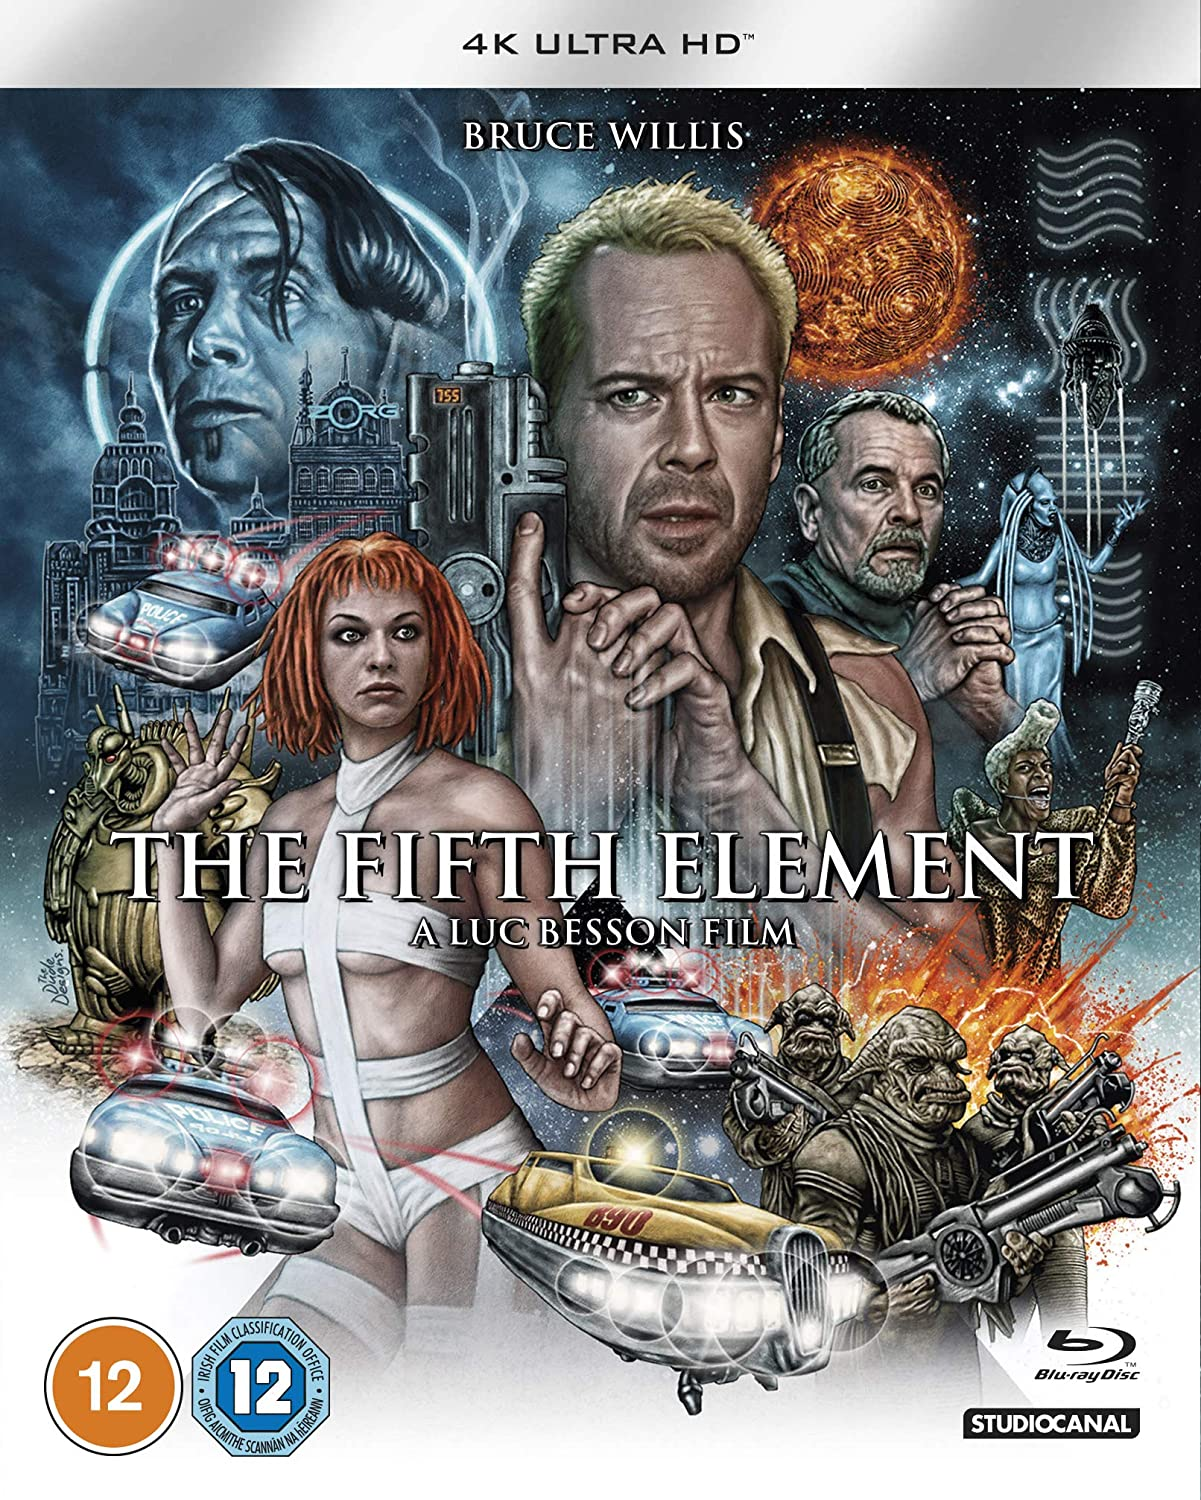 The Fifth Element.jpg